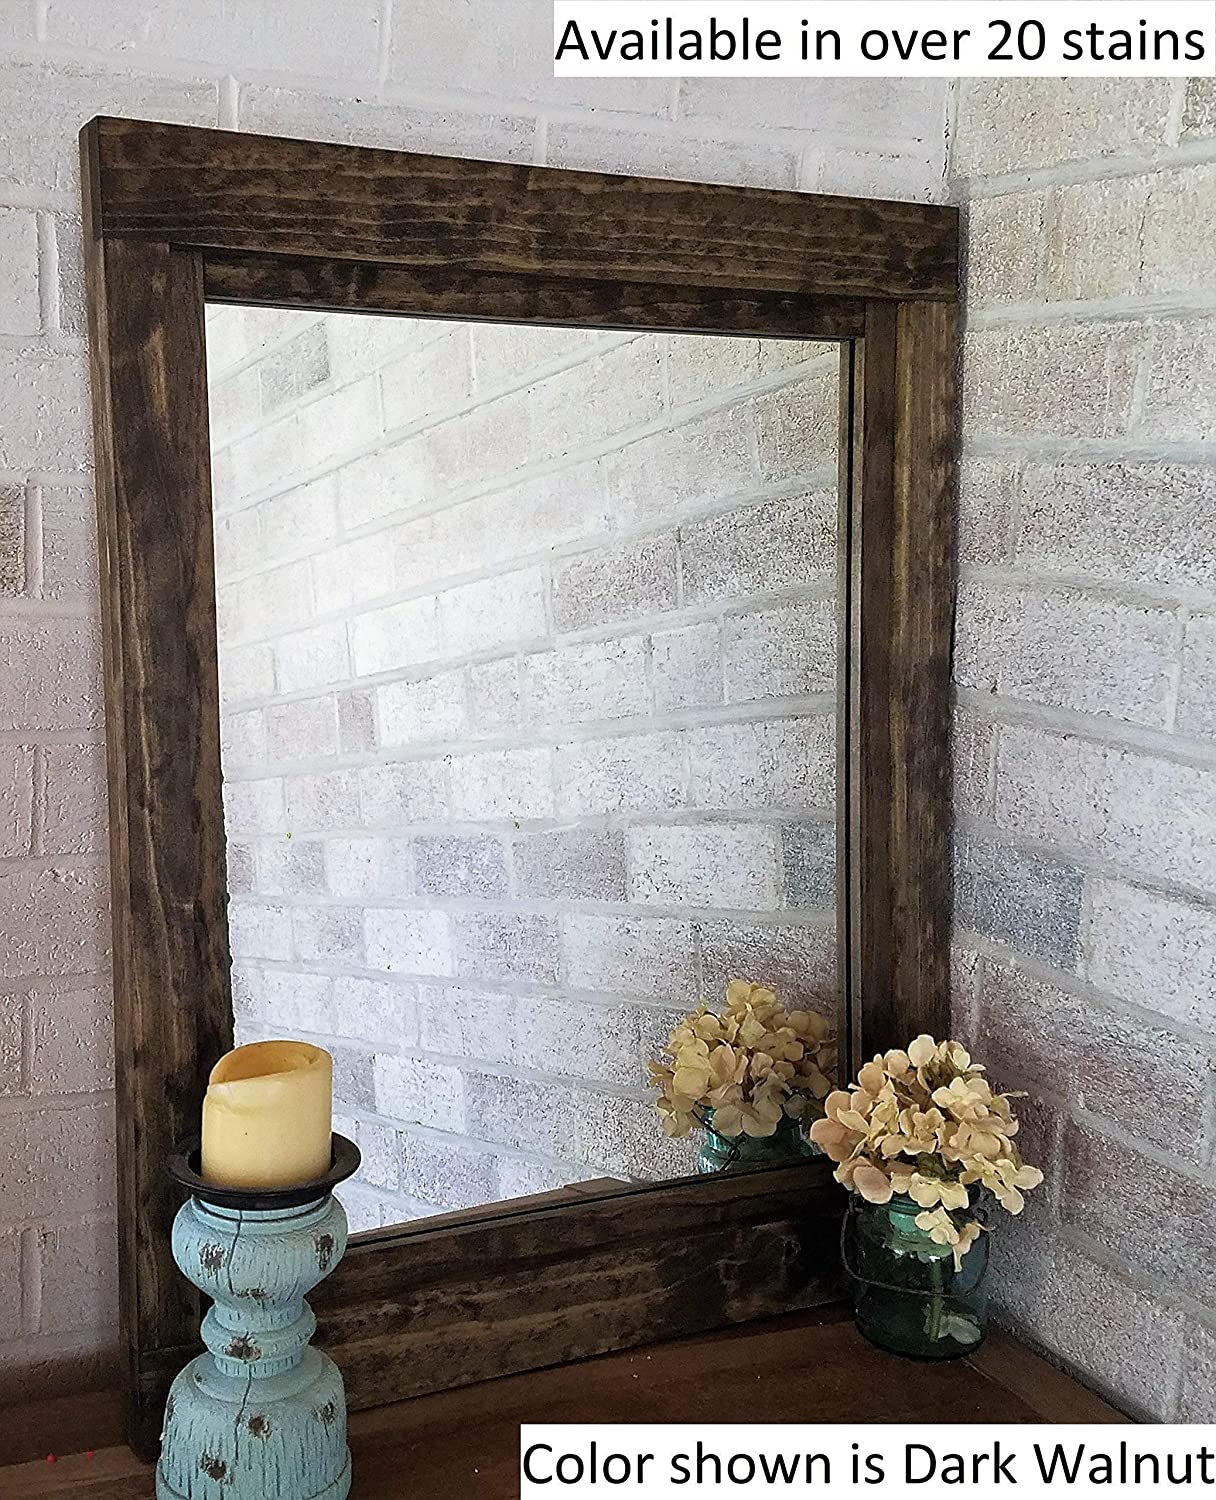 Farmhouse Large Framed Mirror Available in Five Sizes and 20 Stain Colors: Shown in Dark Walnut - Large Wall Mirror – Rustic Style Home Decor - Housewares - Woodwork